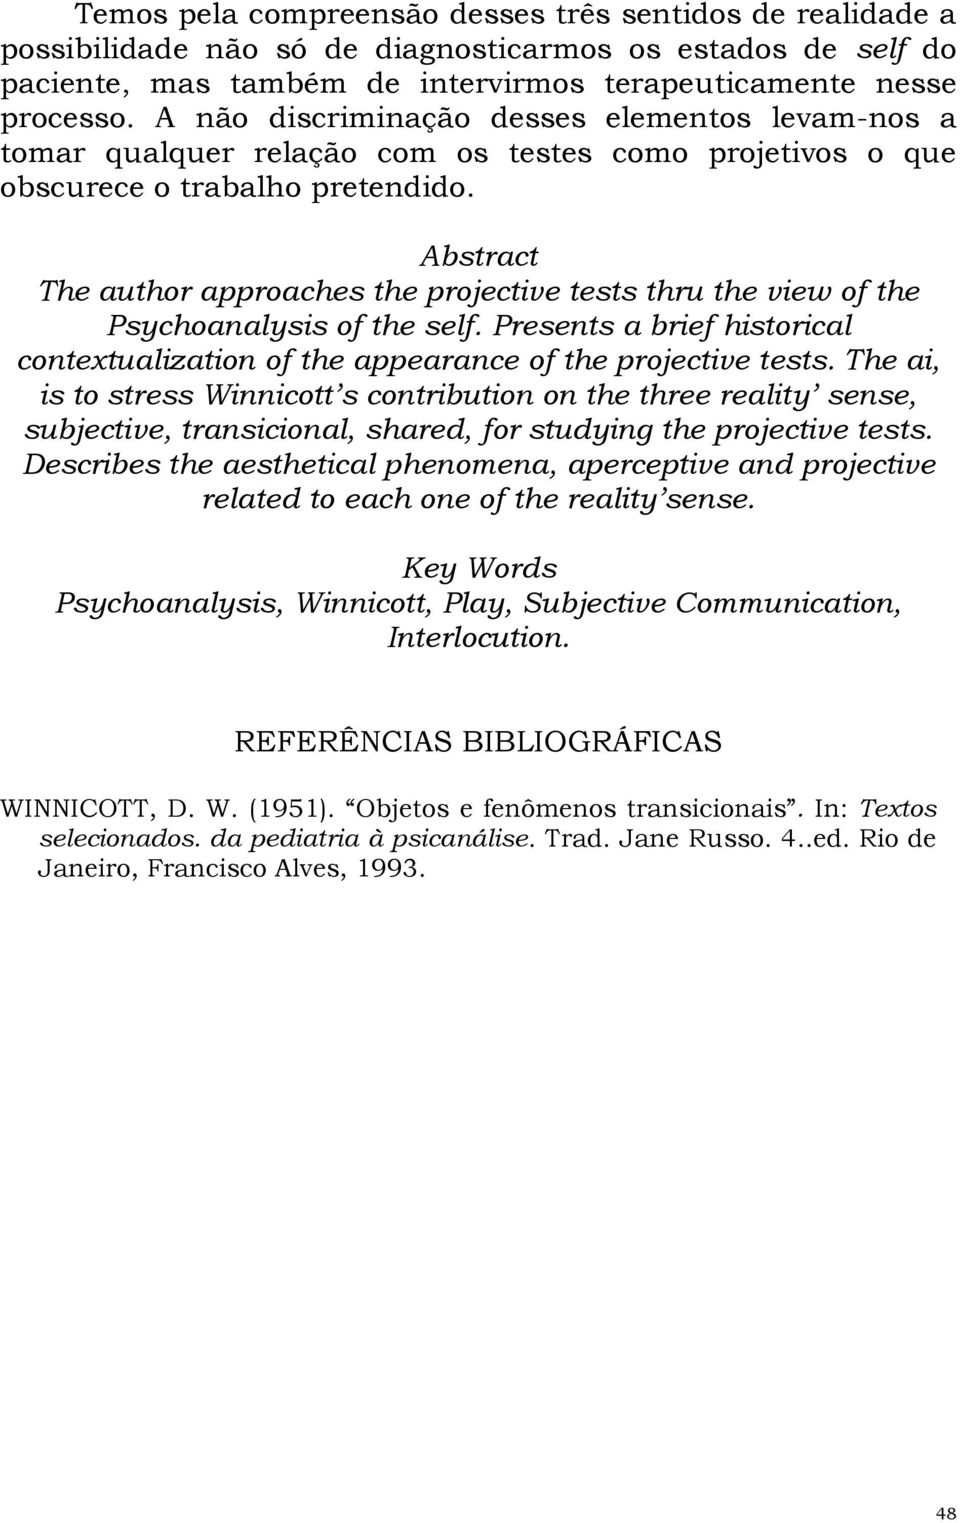 Abstract The author approaches the projective tests thru the view of the Psychoanalysis of the self. Presents a brief historical contextualization of the appearance of the projective tests.